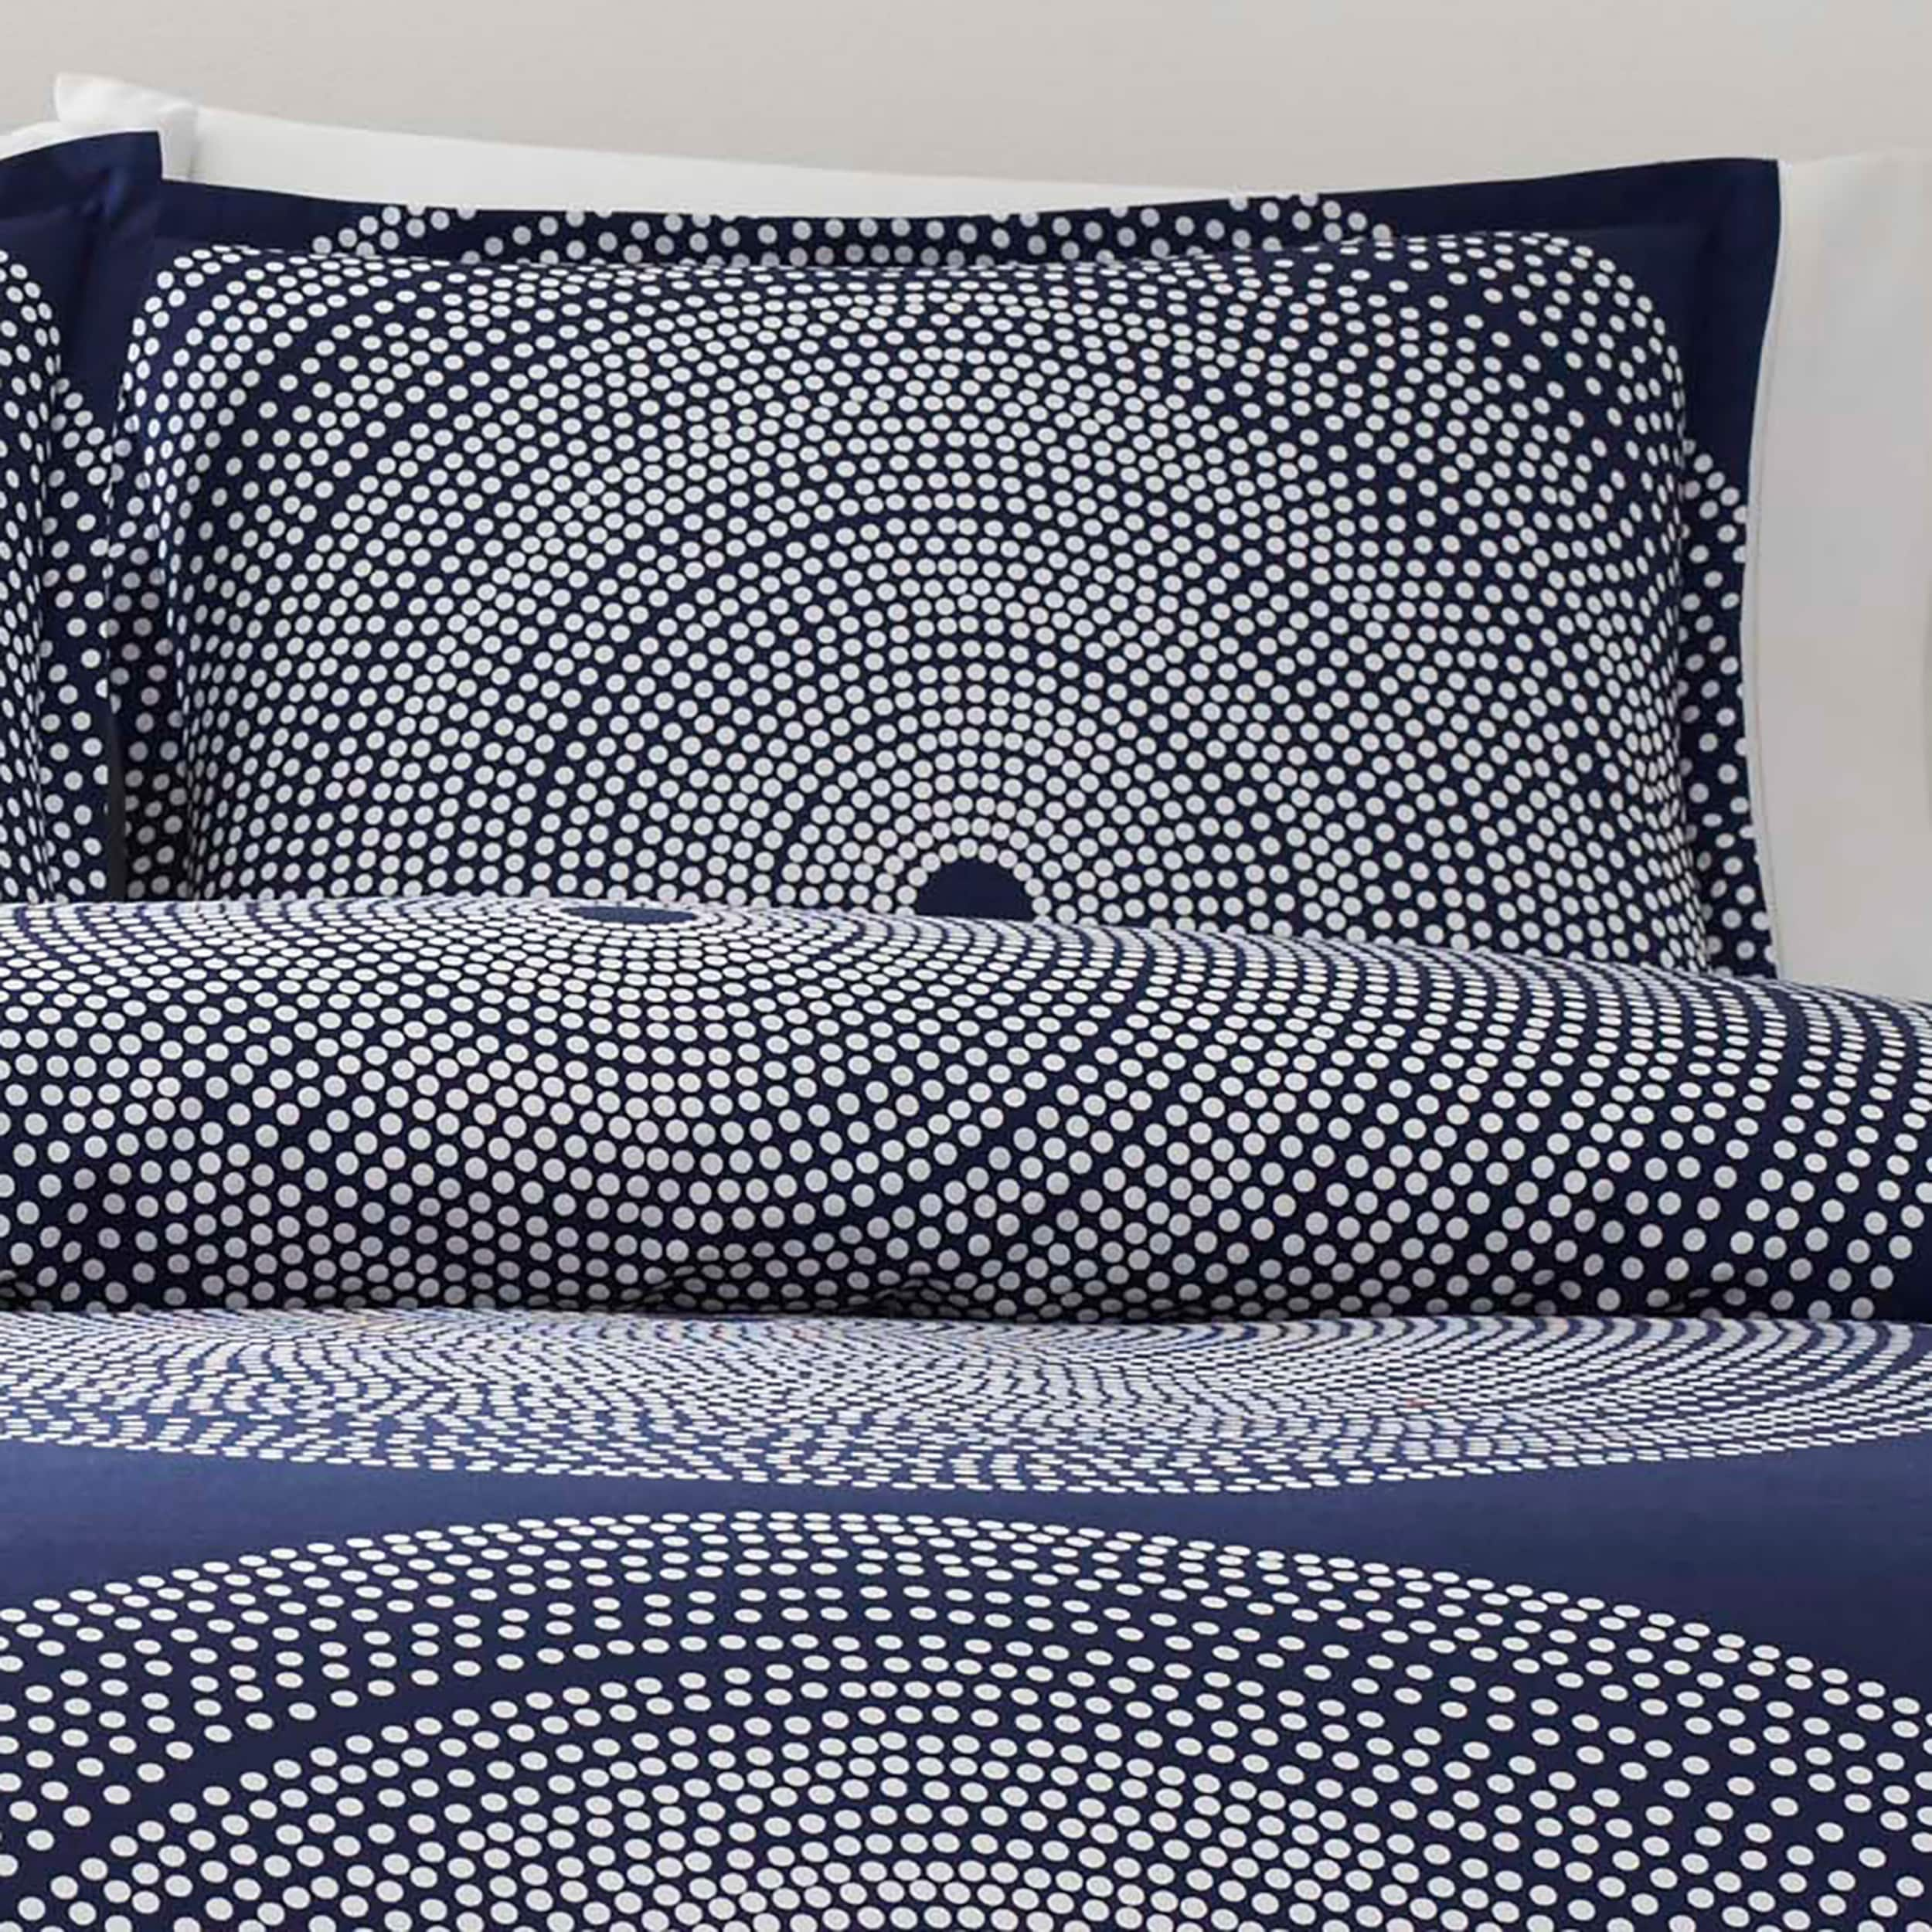 damask bedroom colorful teen and size designer full bohemian country sets black decor marimekko style modern queen of boho bedding bed bedspread white